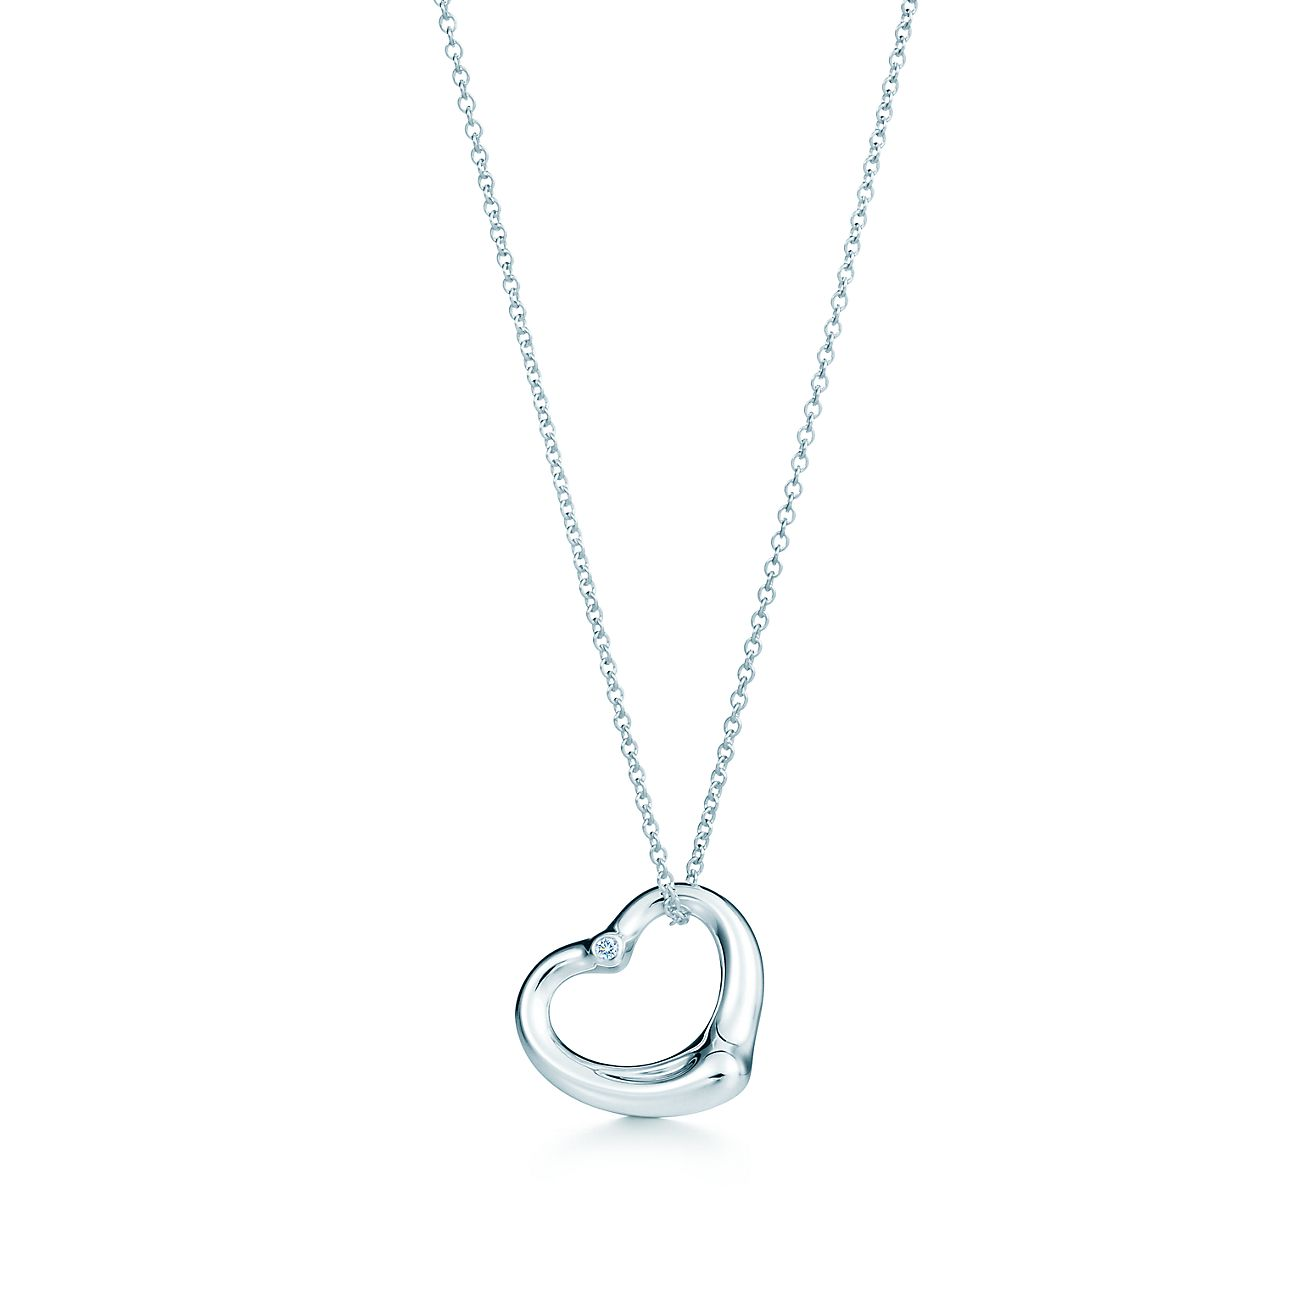 Tiffany Hearts pendant with diamonds in platinum Tiffany & Co. se2ttMf